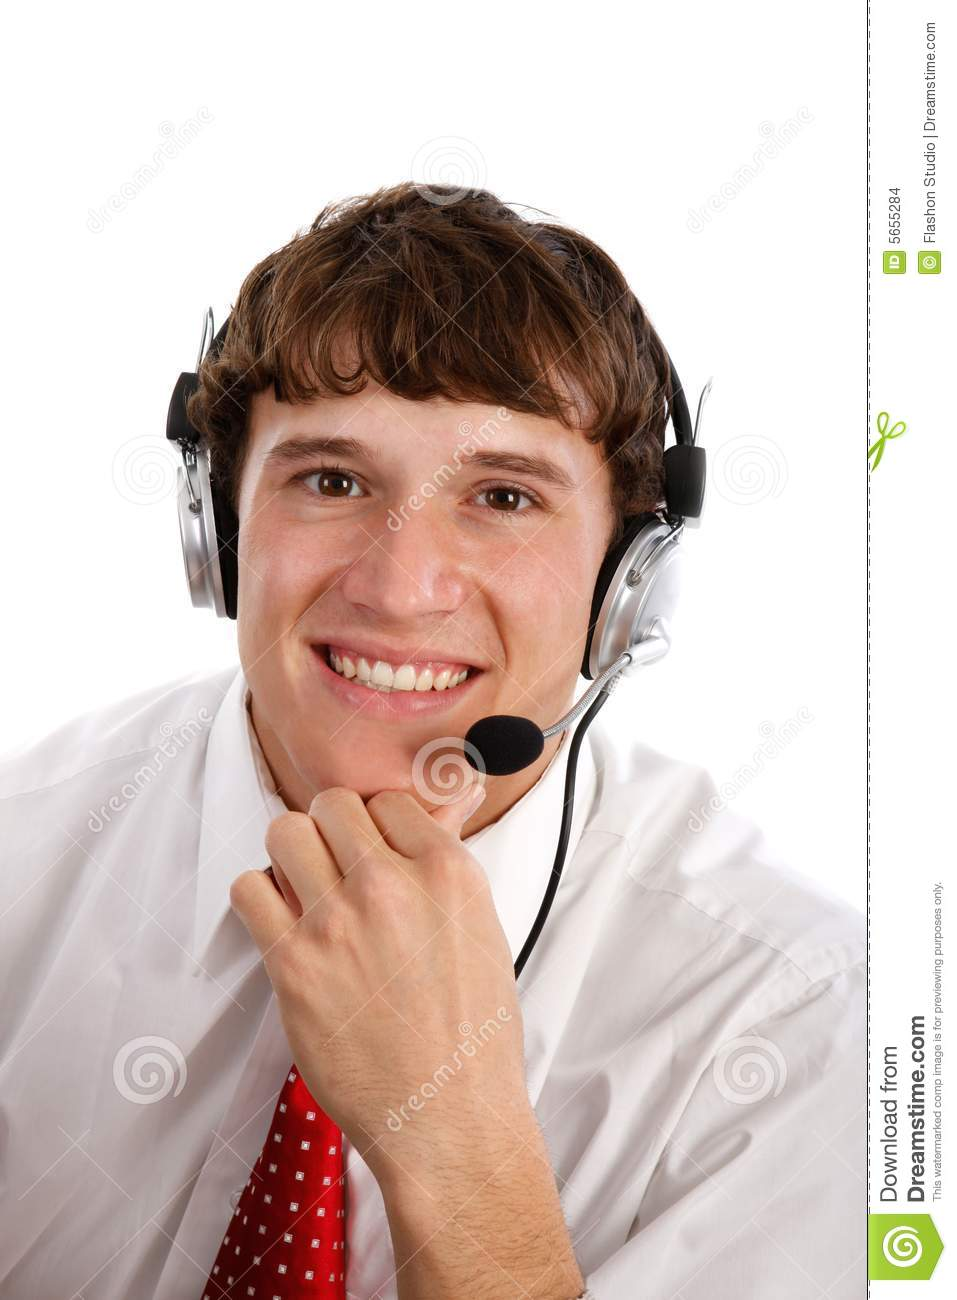 Technical Support Person Stock Photo  Image Of Shirt